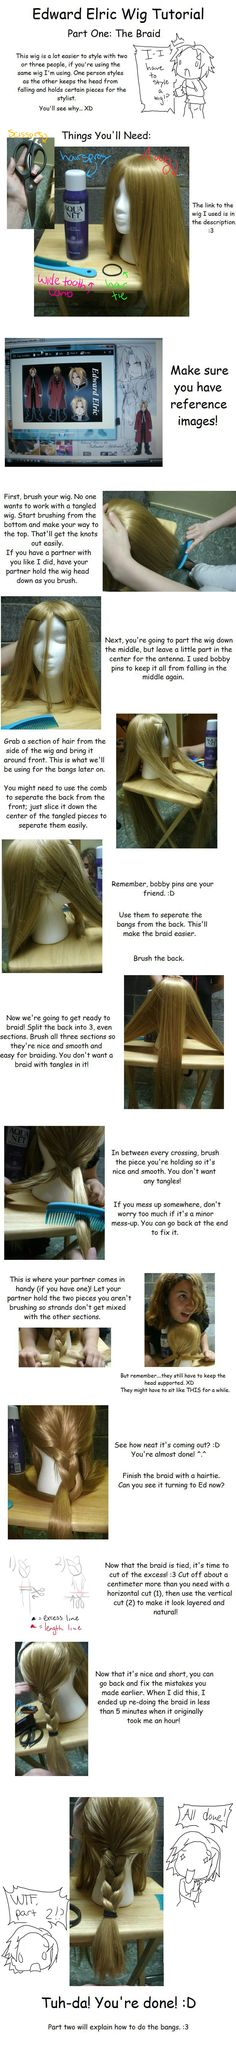 For Ed Elric, obviously. Edward Wig Tutorial: Pt. 1 by SakiRee